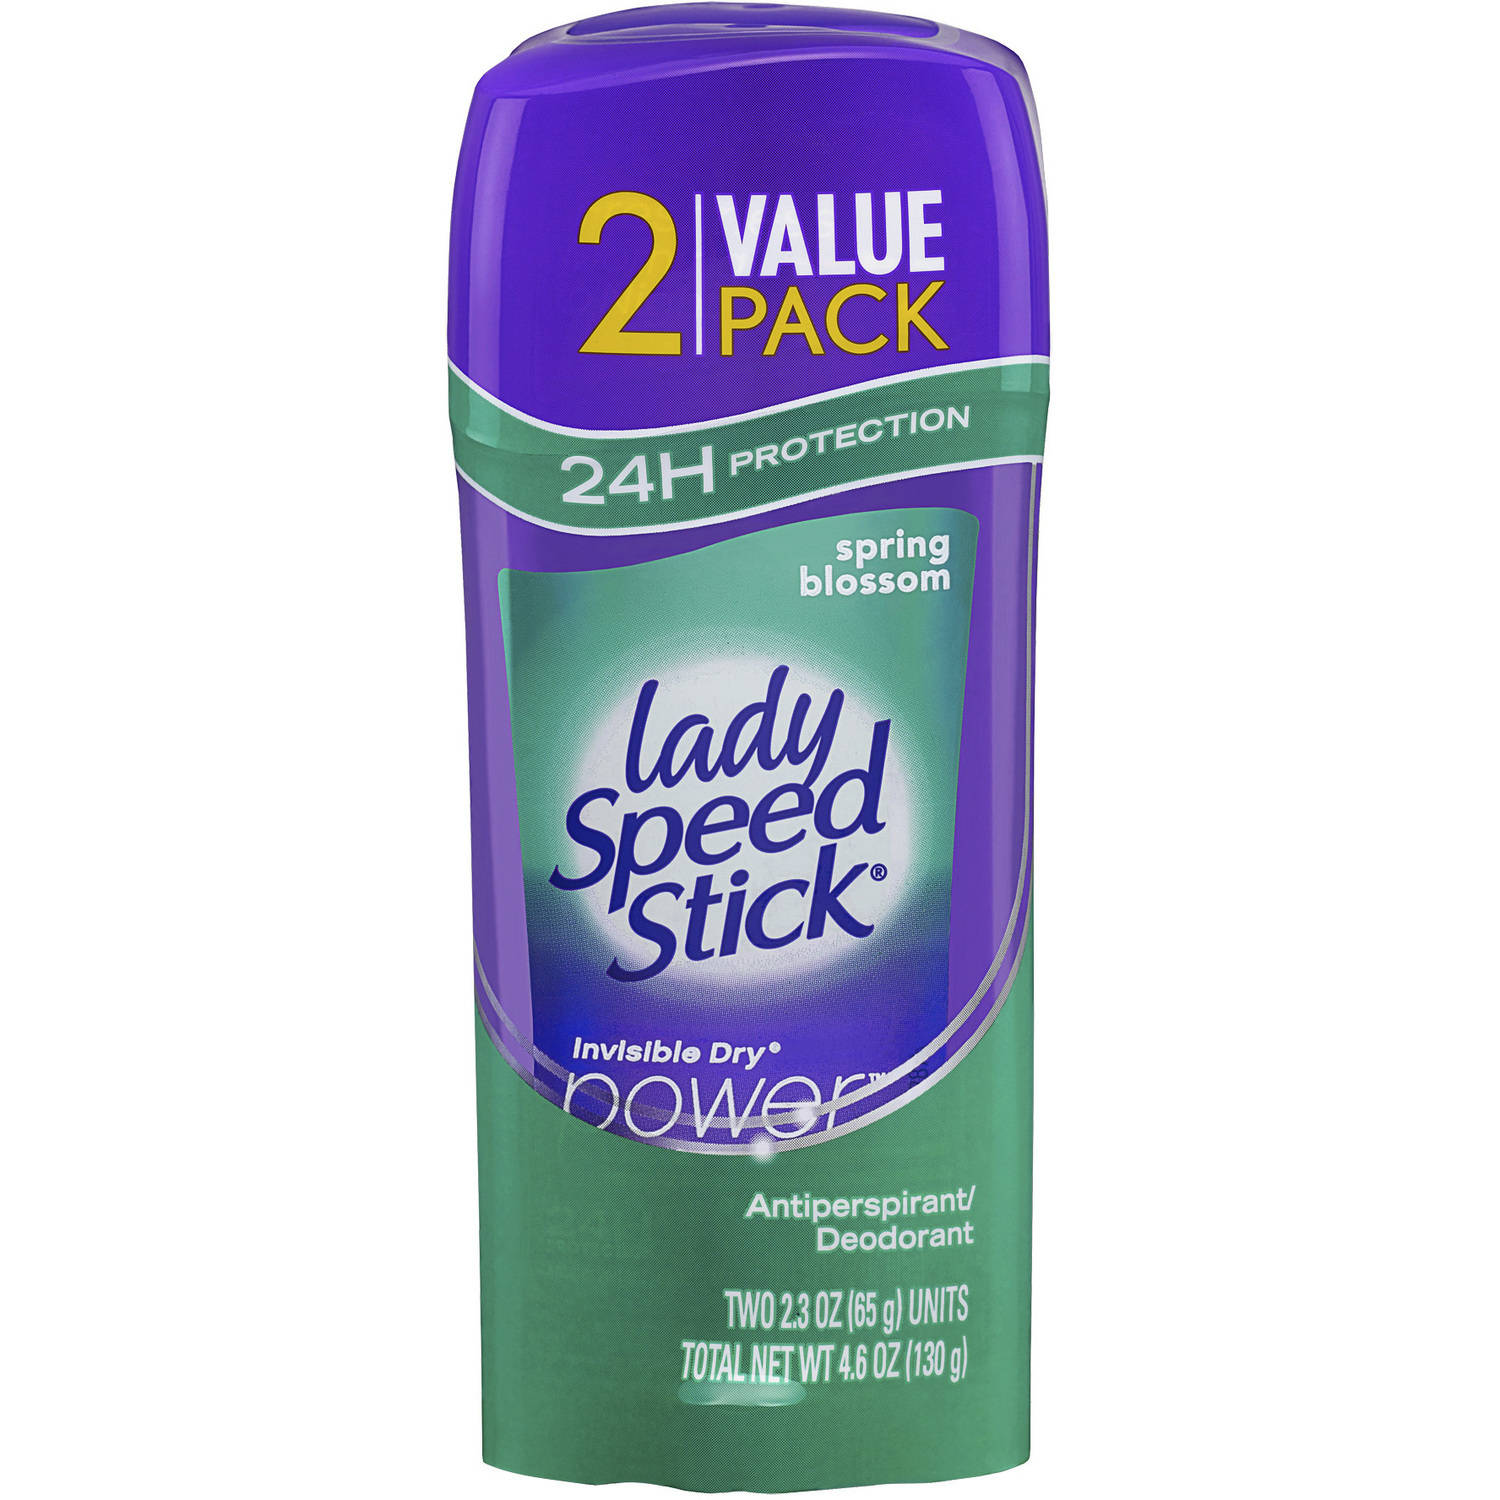 Lady Speed Stick Invisible Dry Power Spring Blossom Antiperspirant Deodorant, 2.3 oz, 2 count